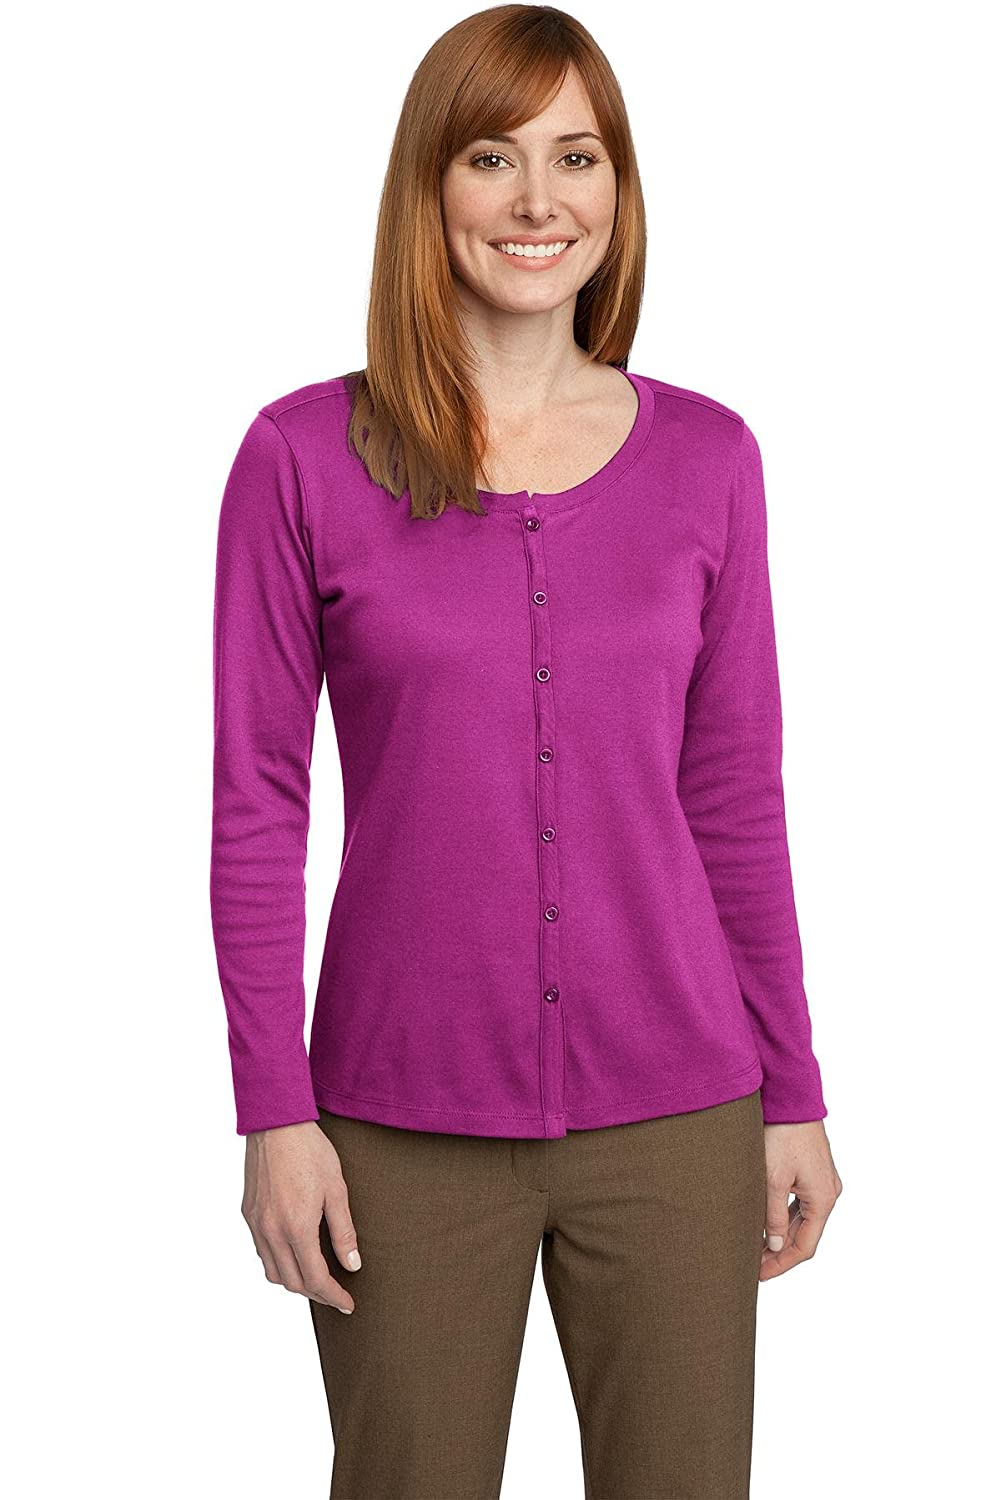 Port Authority Women's Silk Touch Interlock Cardigan at Amazon ...